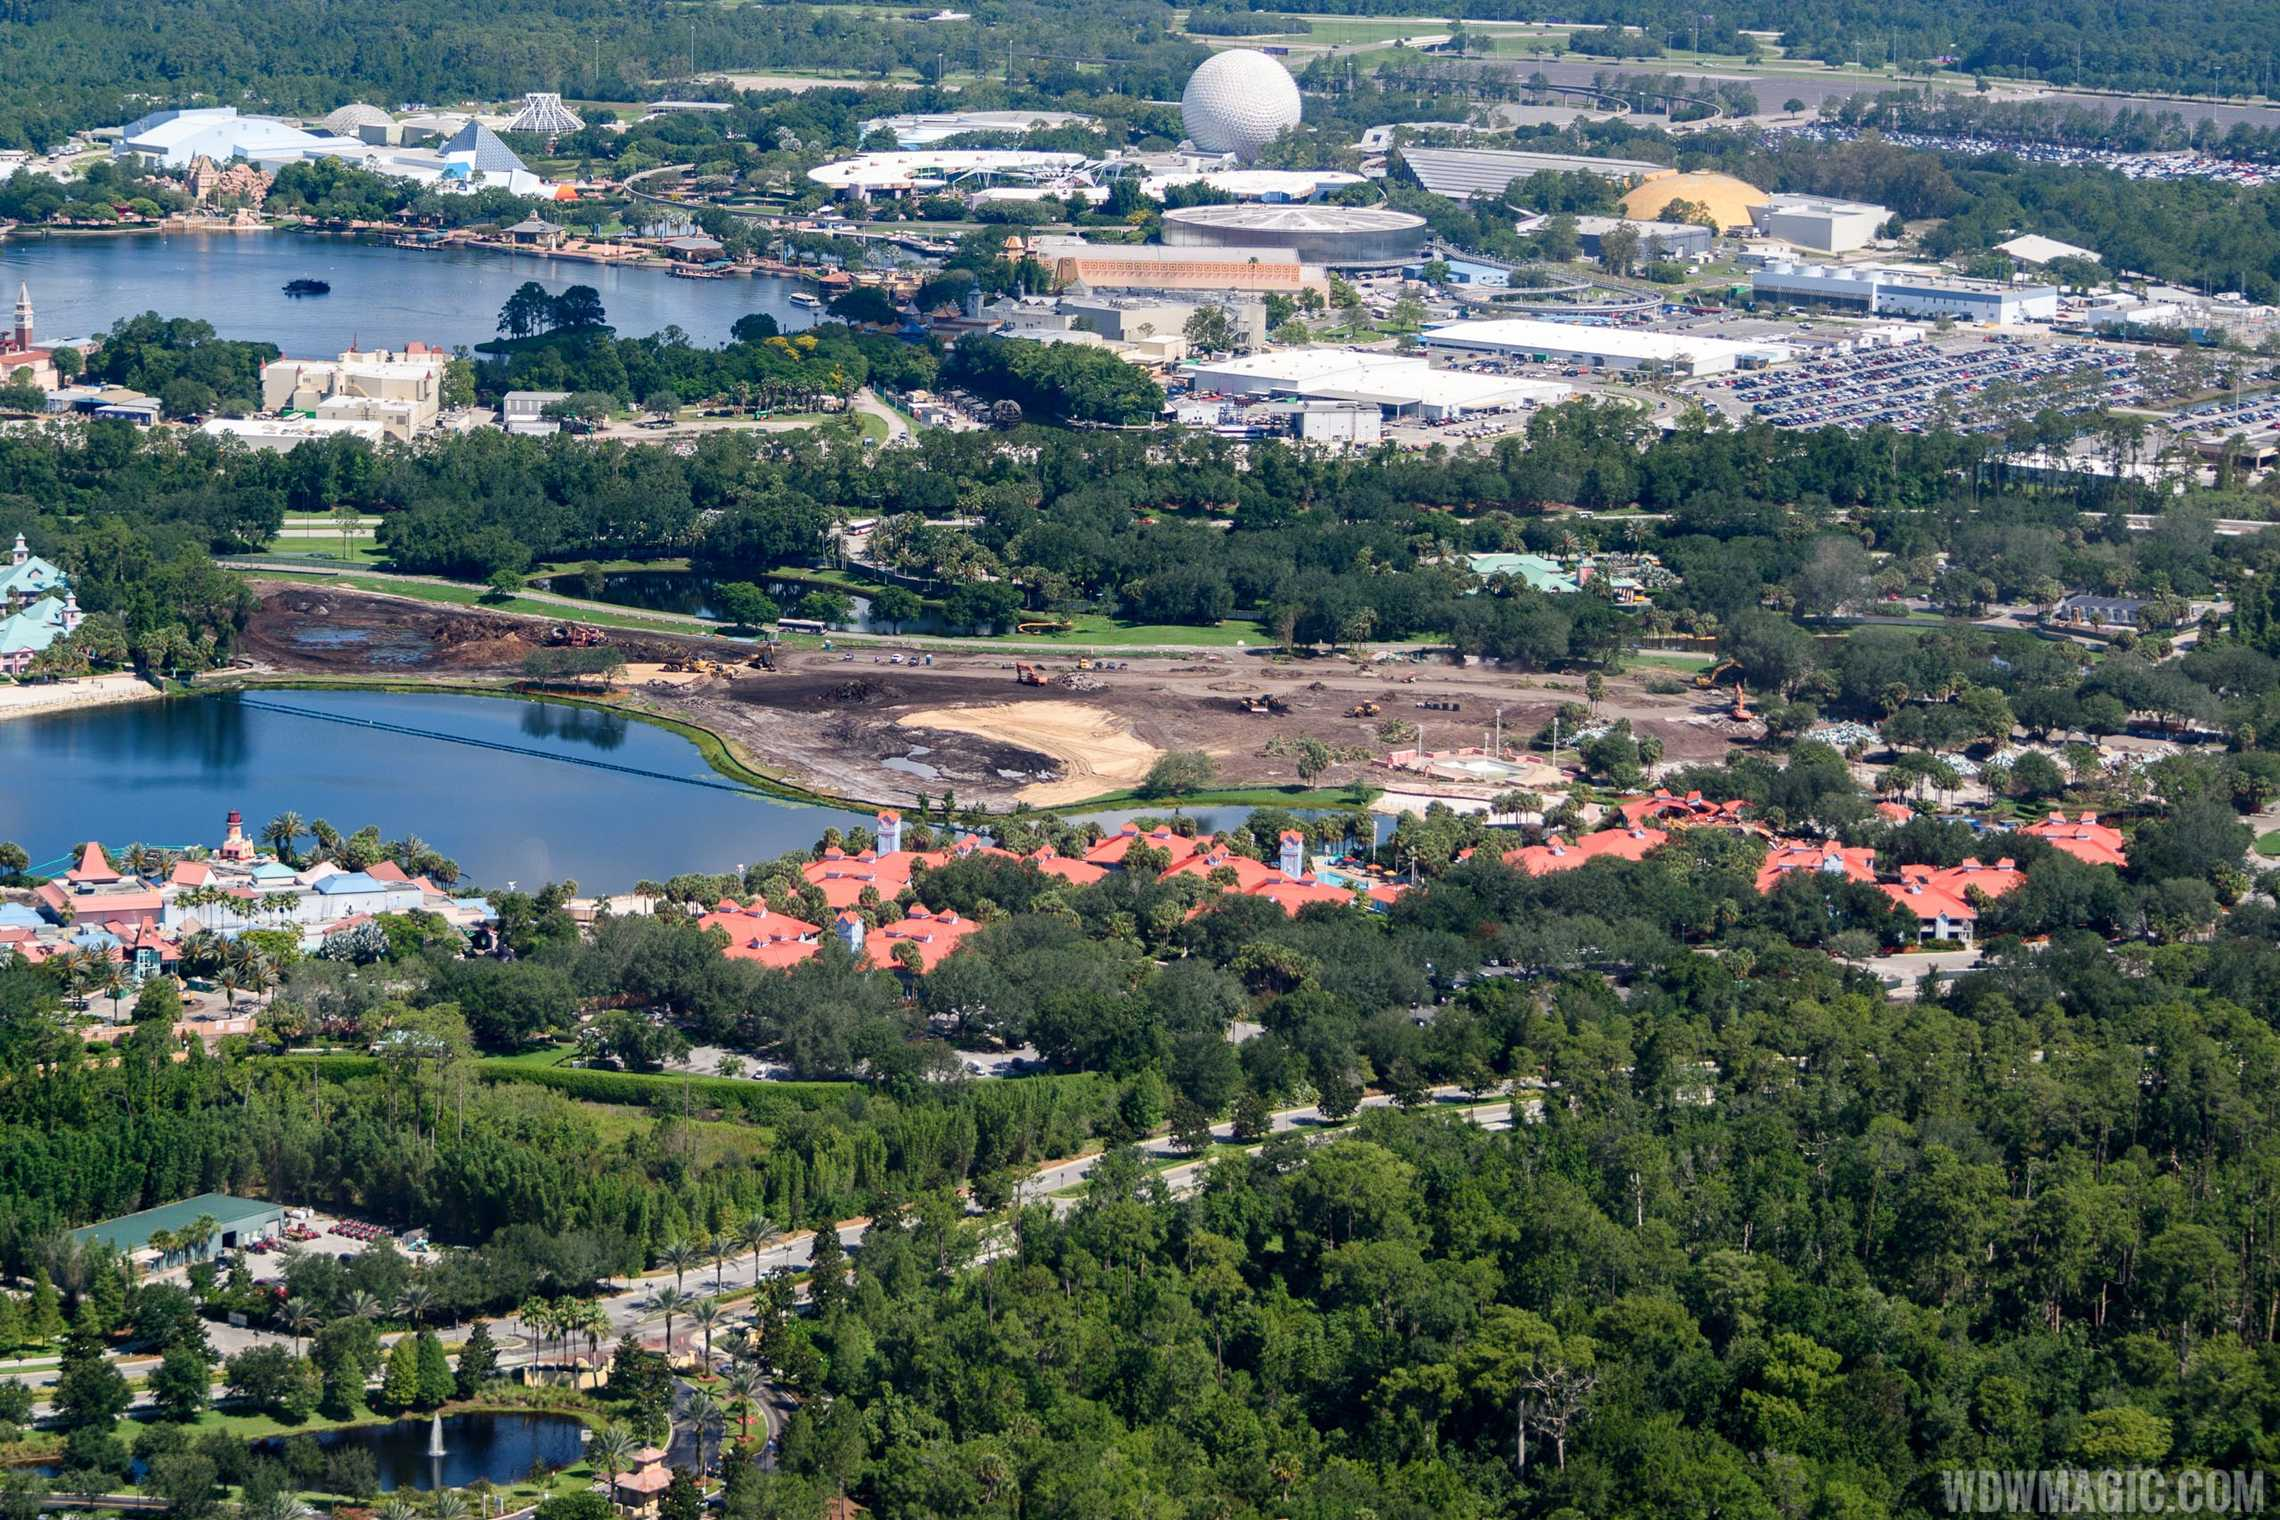 Caribbean Beach Resort aerial view